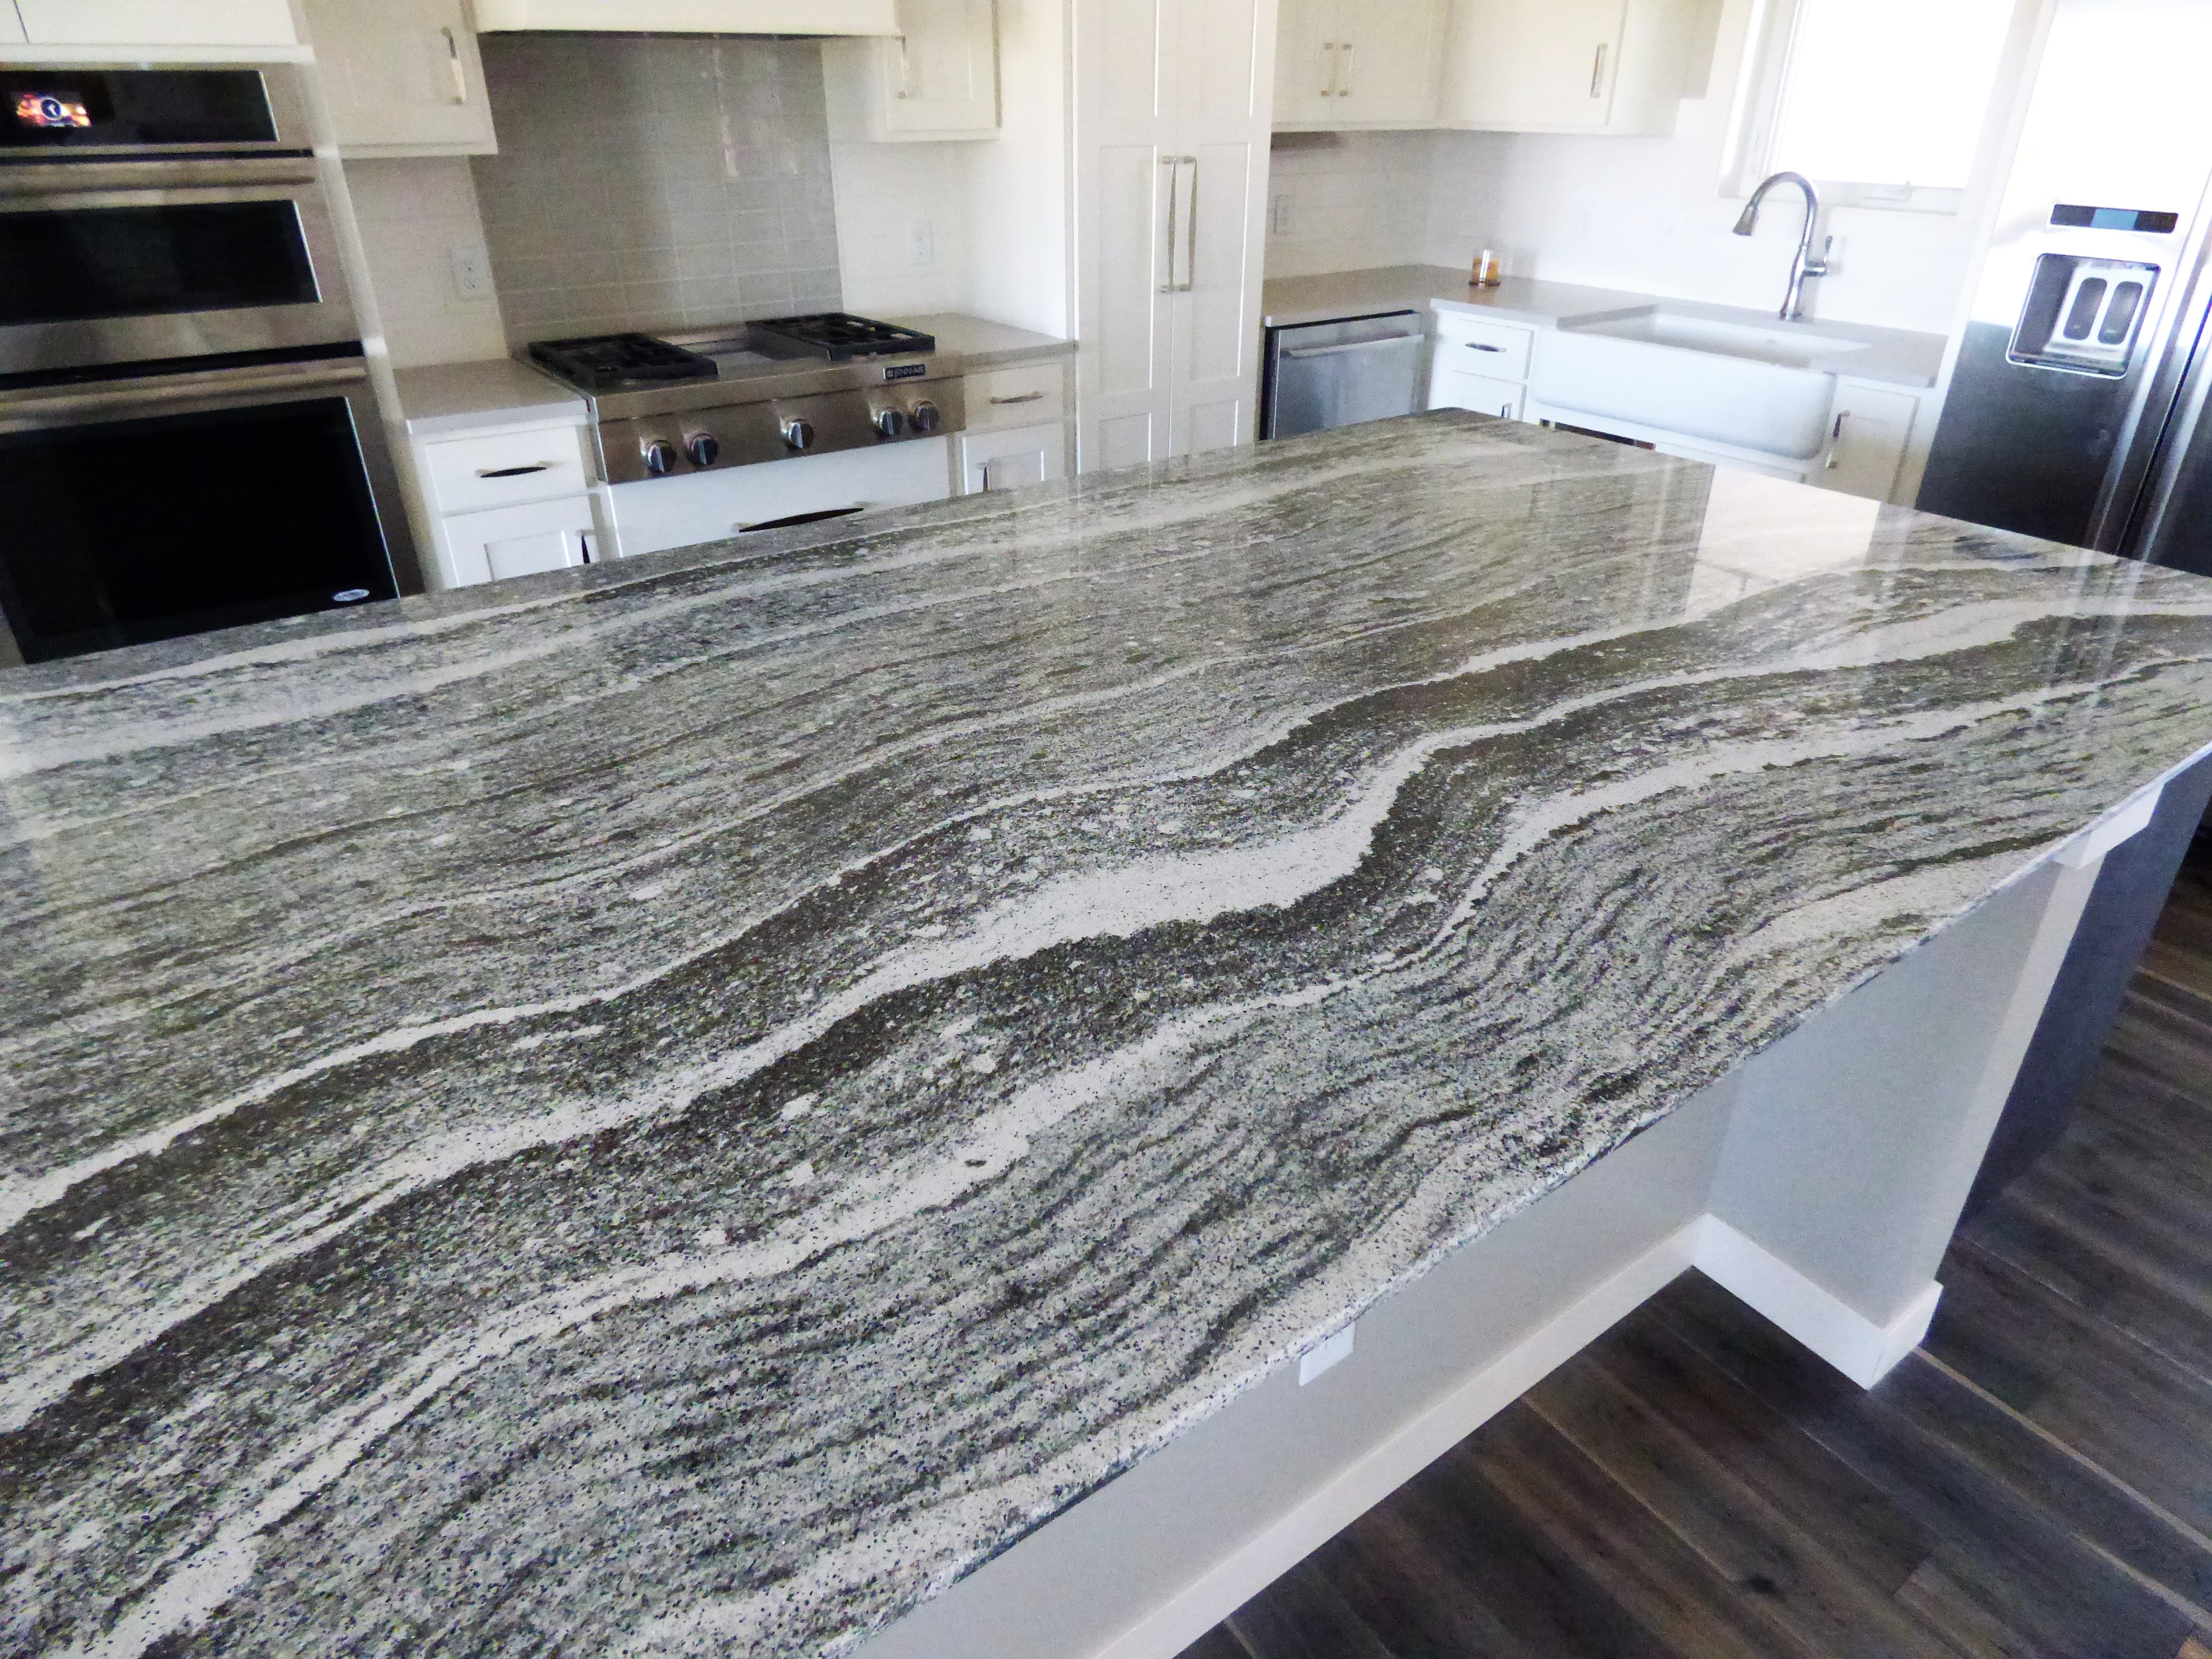 Wood Slabs For Countertops